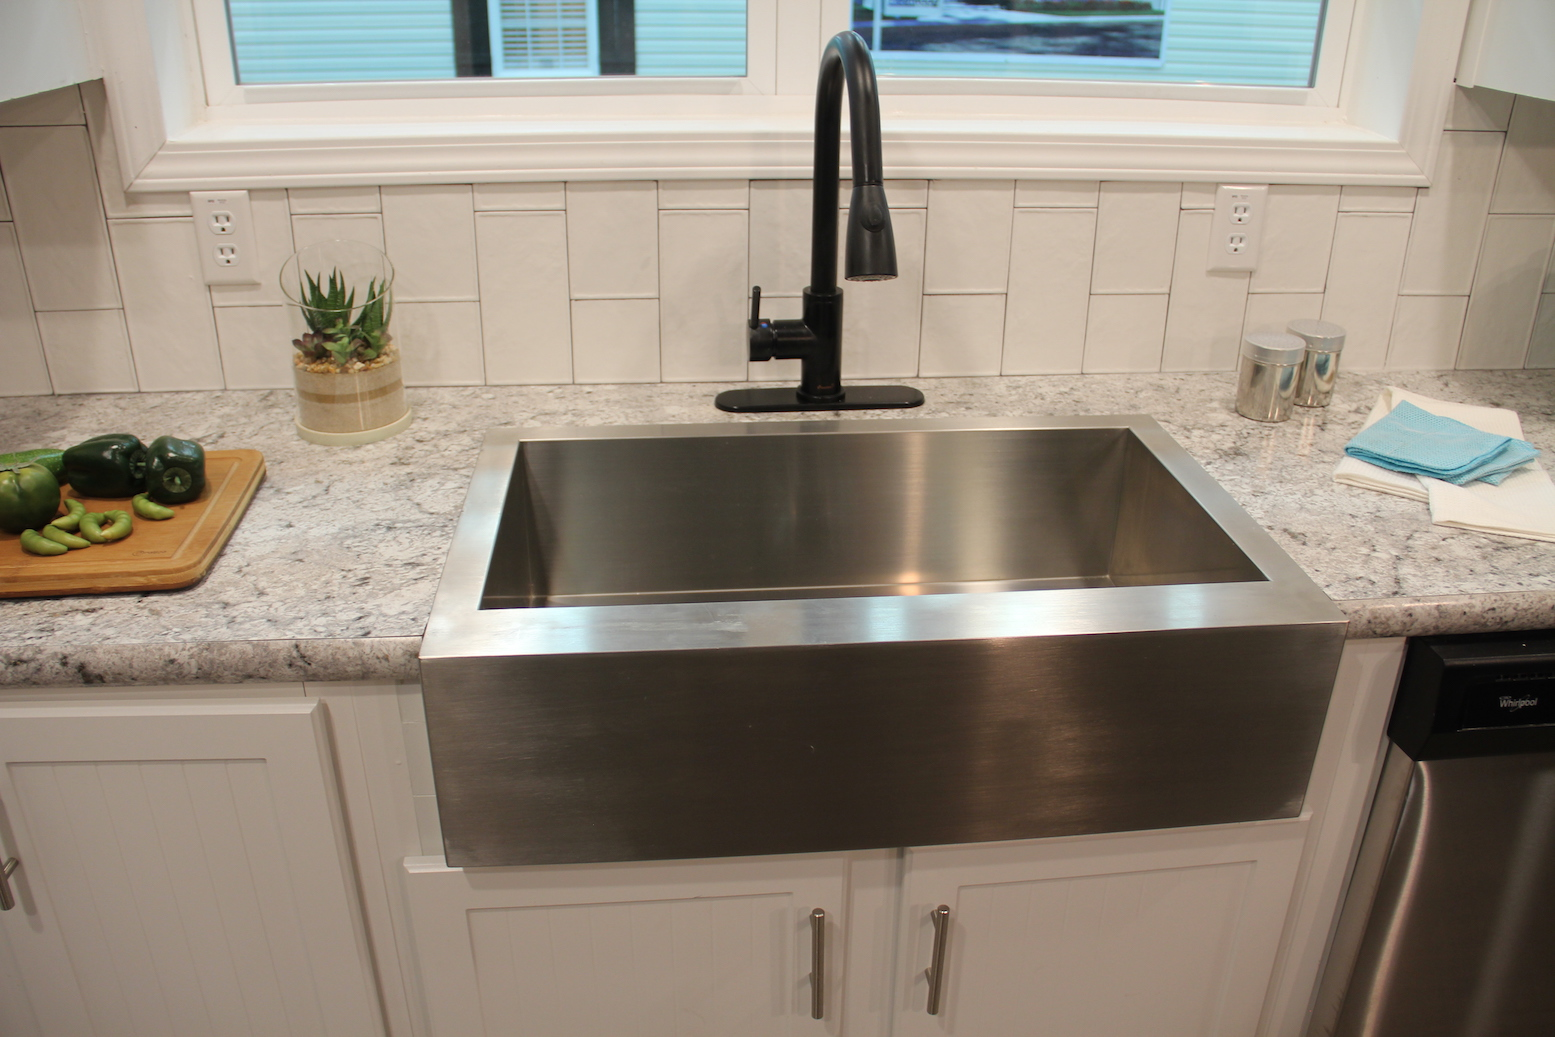 Bathroom Sinks For Mobile Homes new manufactured homes for 2017 and beyond | ez homes llc